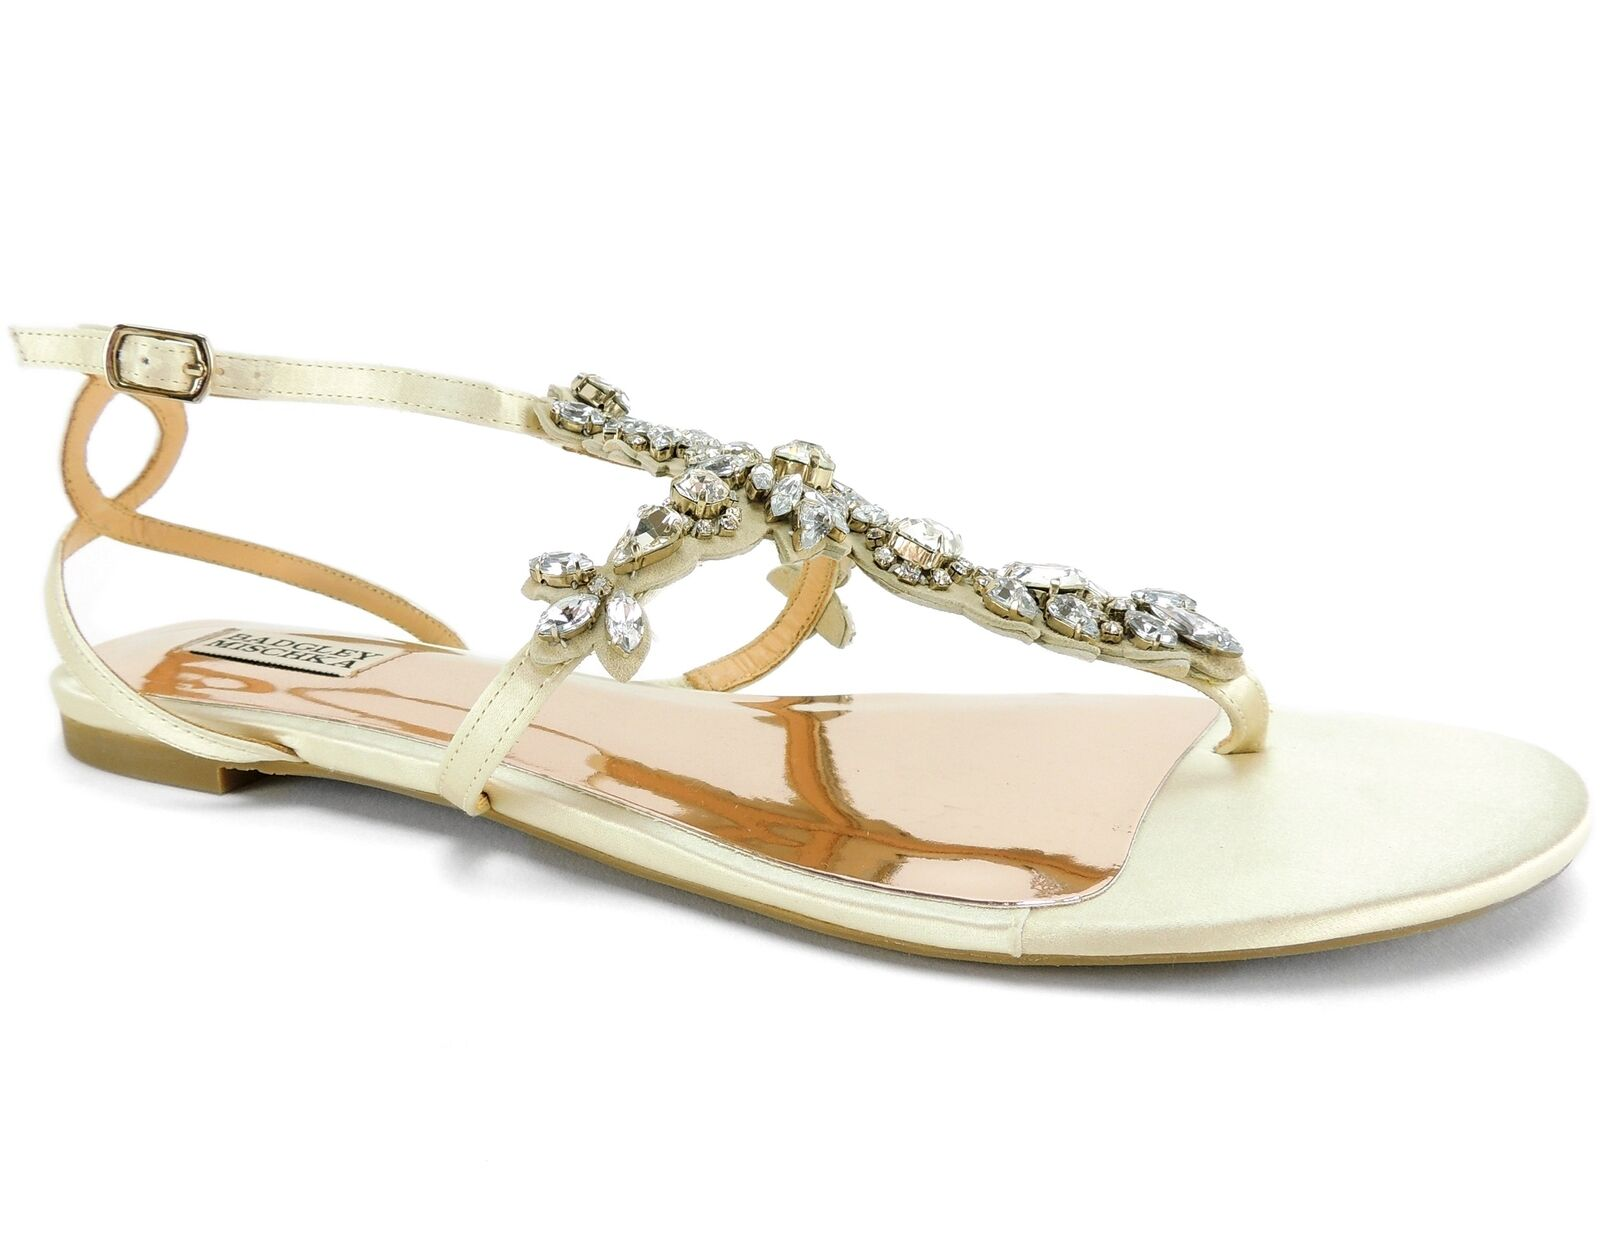 Badgley Mischka Donna  Cara Evening Flat Sandals Ivory Ivory Ivory Satin Dimensione 11 M e111de